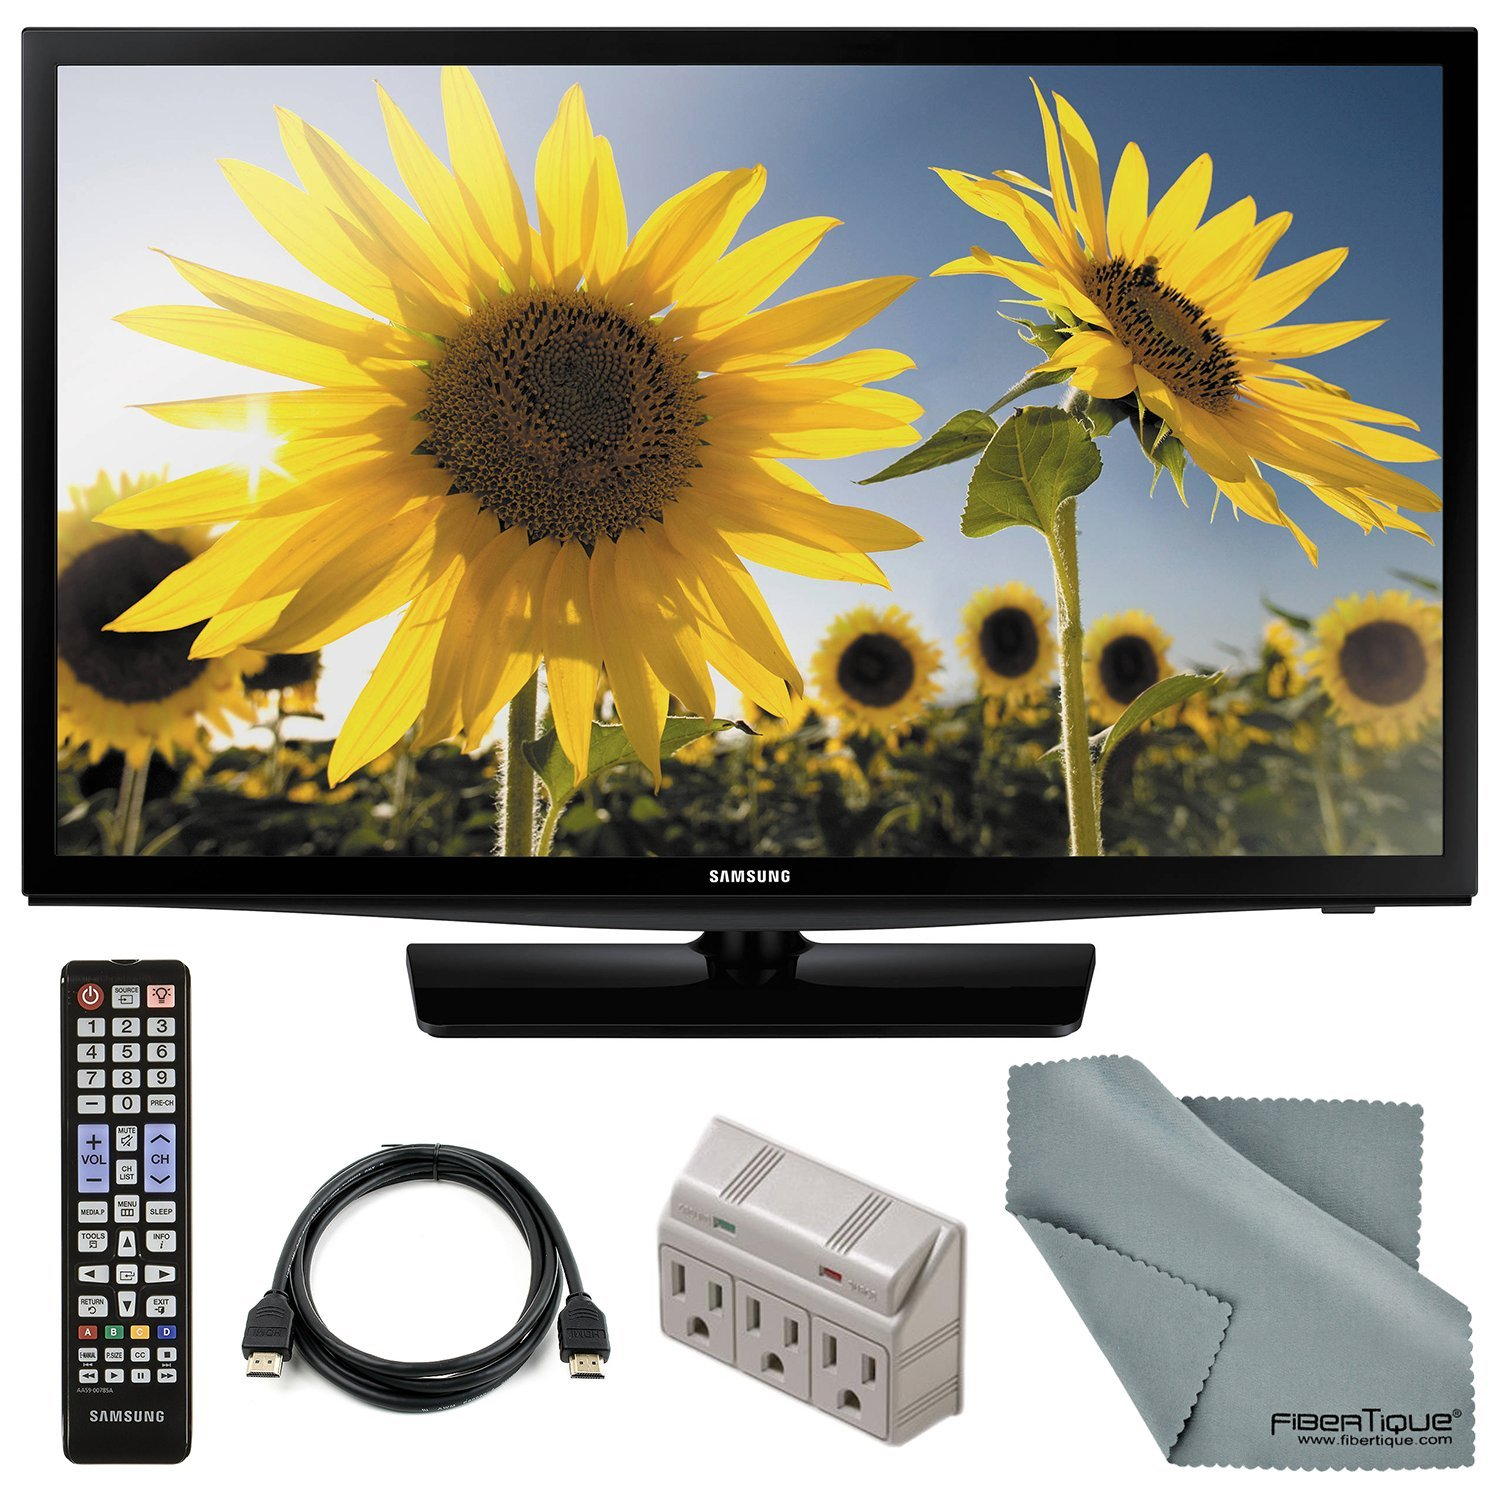 "Samsung UN28H4000 28"" 720p 60Hz LED TV and Accessory Bundle with Remote Control, HDMI Cable, and FiberTique Cleaning cloth by Photo Savings"